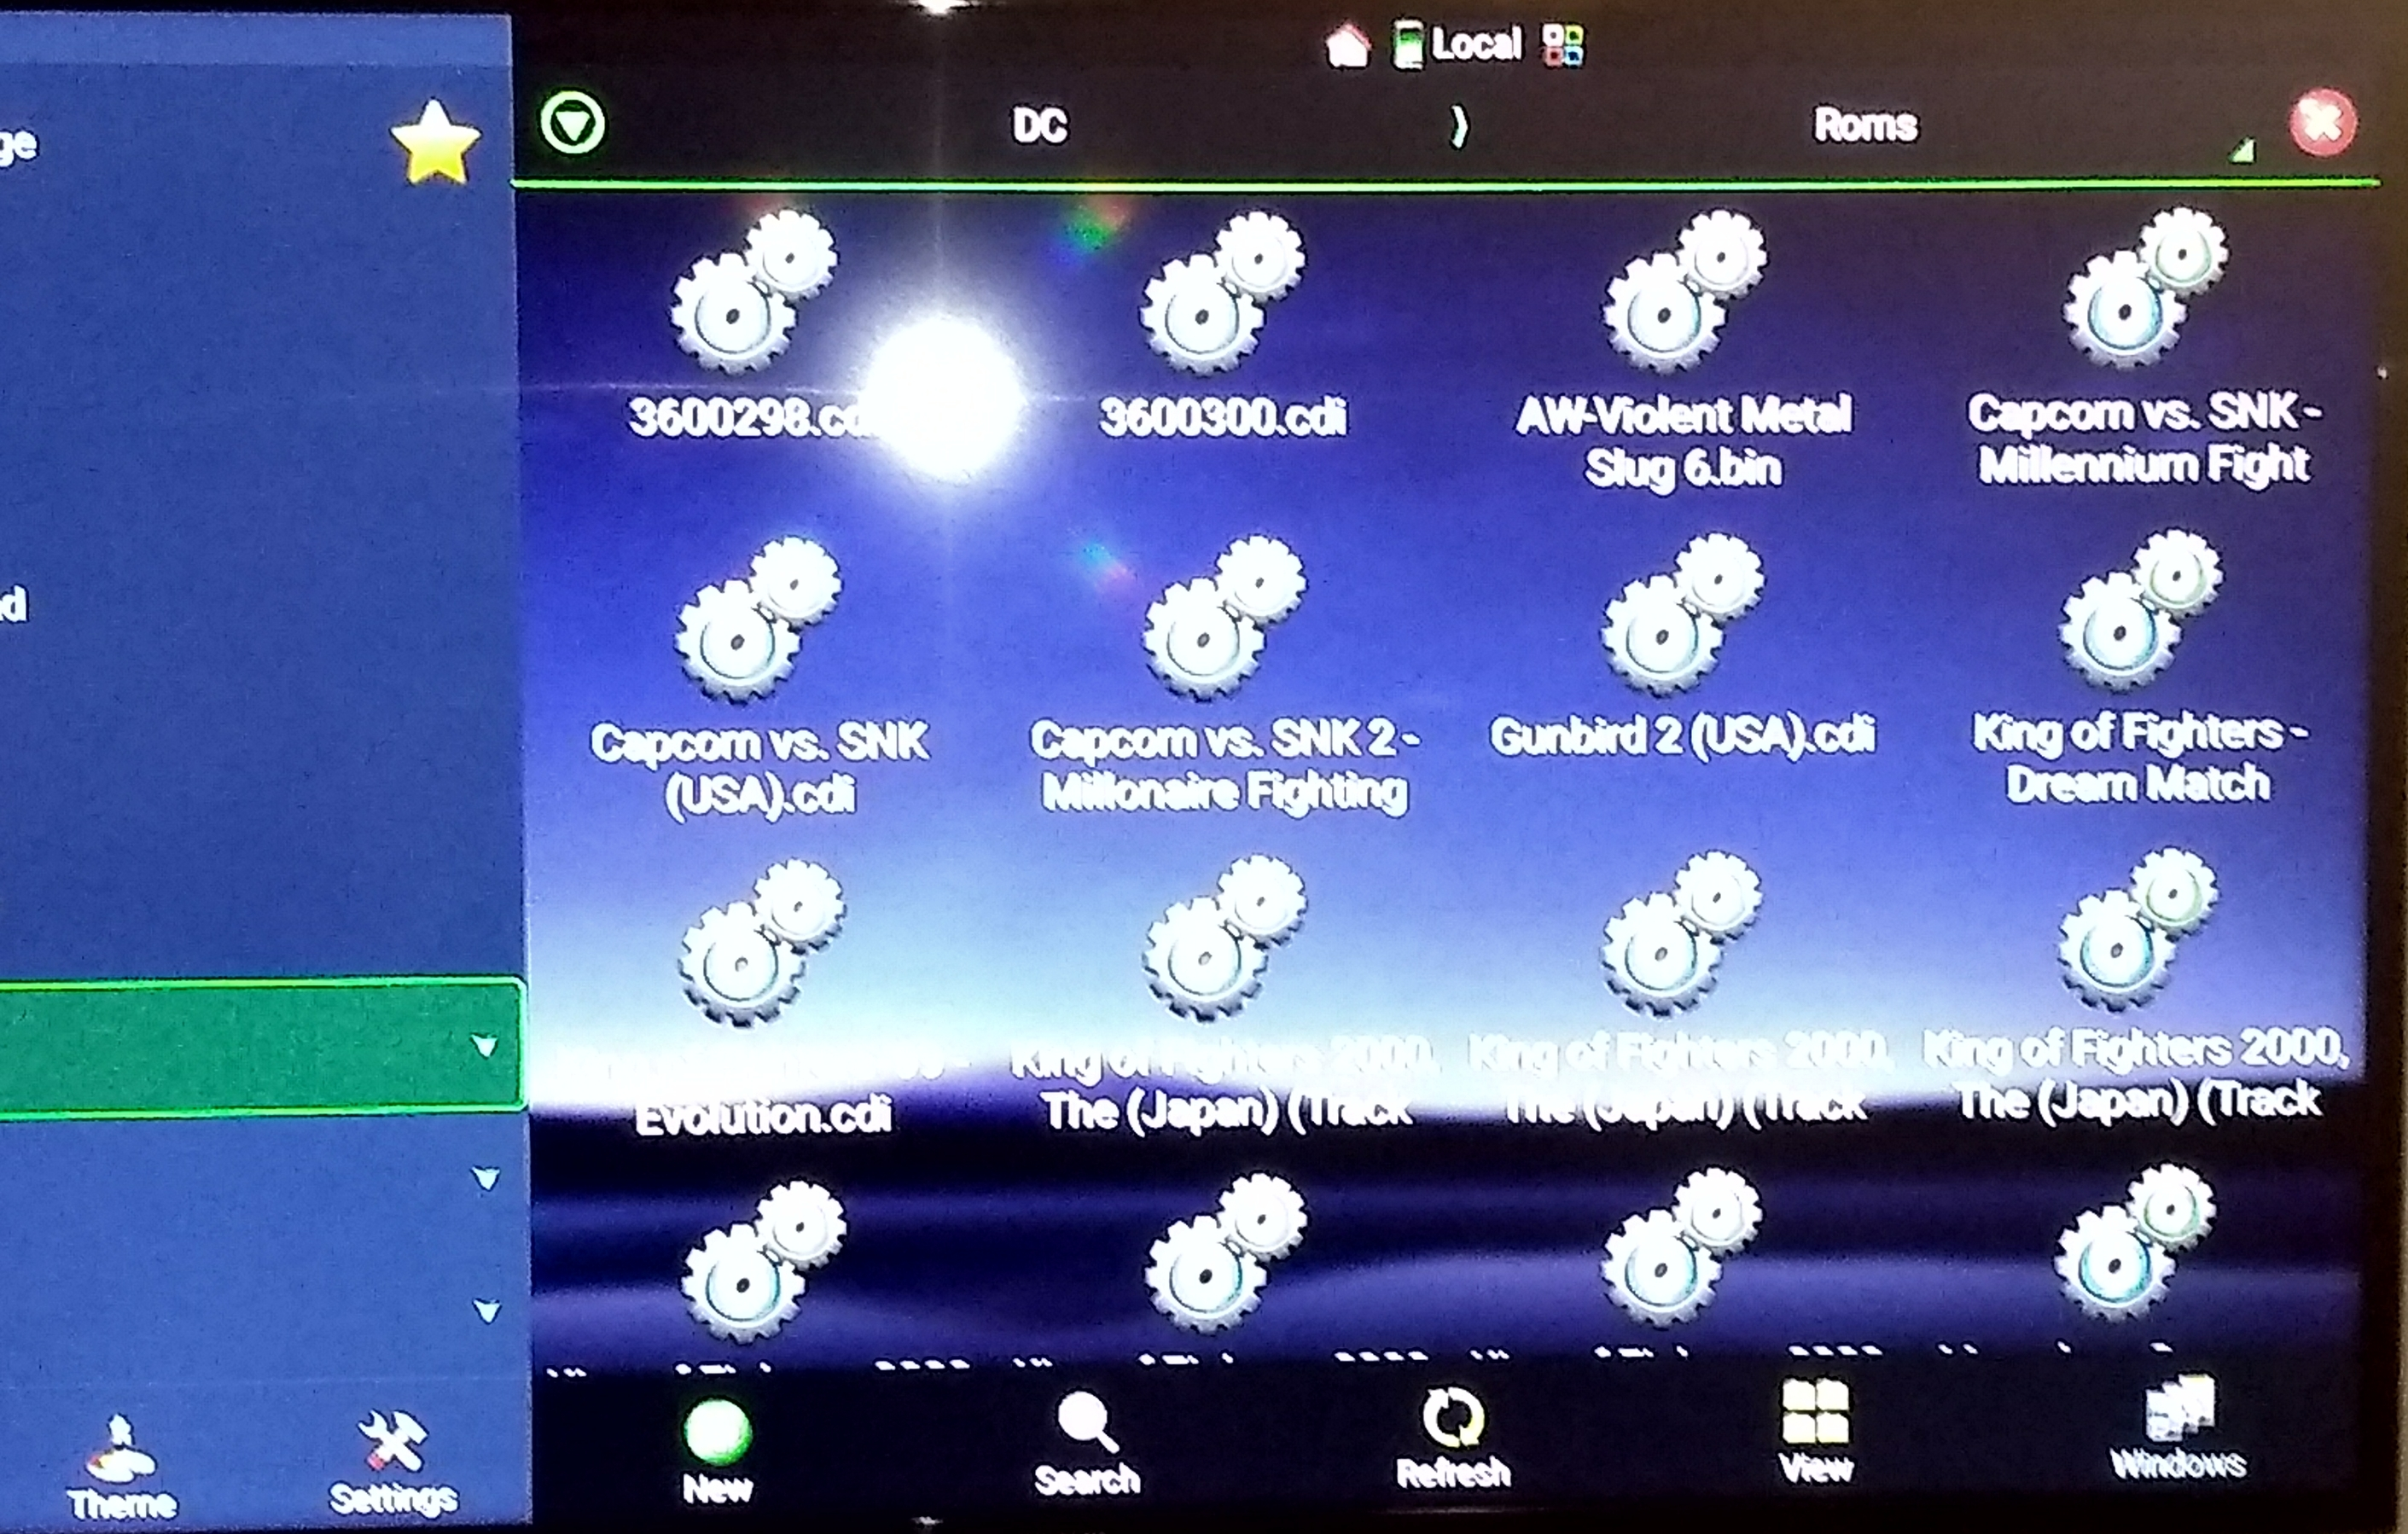 Reicast on FireTV 2nd Gen with RetroArch ? Does it work? - Android